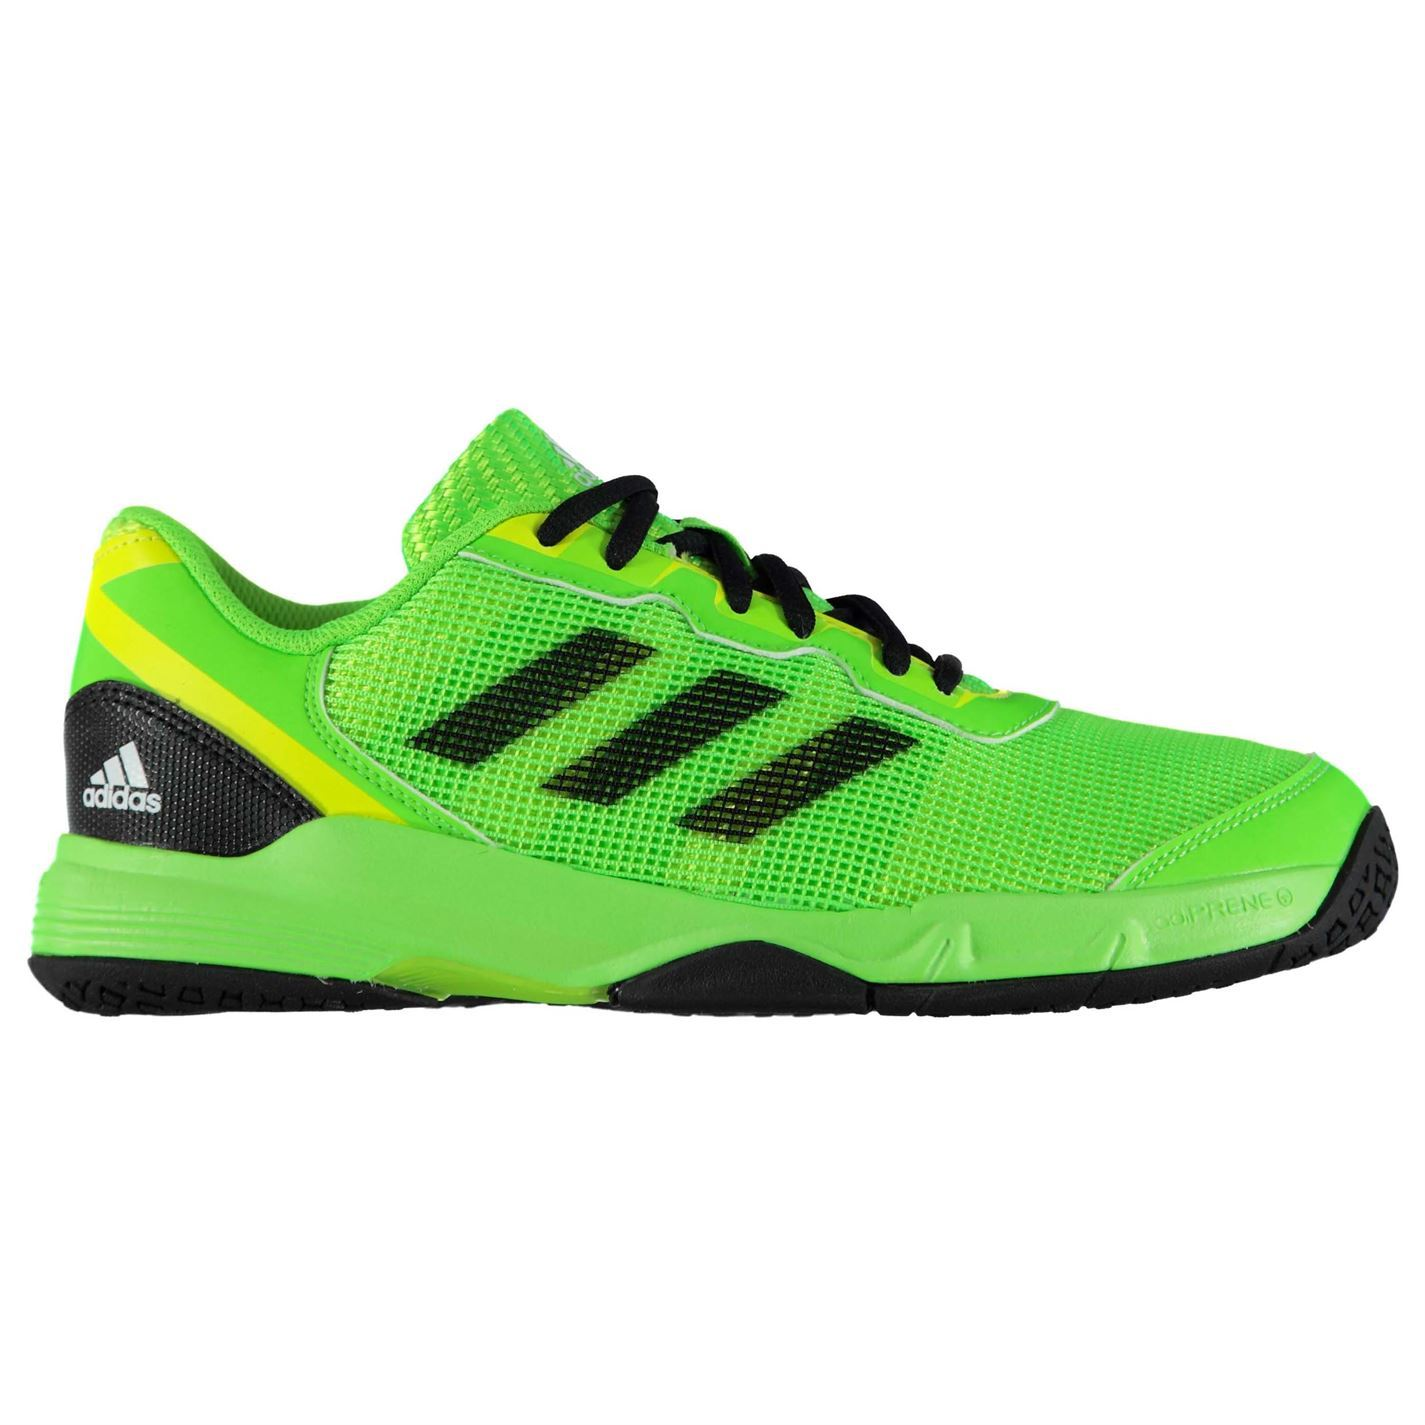 adidas Ladies Stabil J Trainers Footwear Shoes Footwear Trainers Laces Fastened Breathable 17dc27